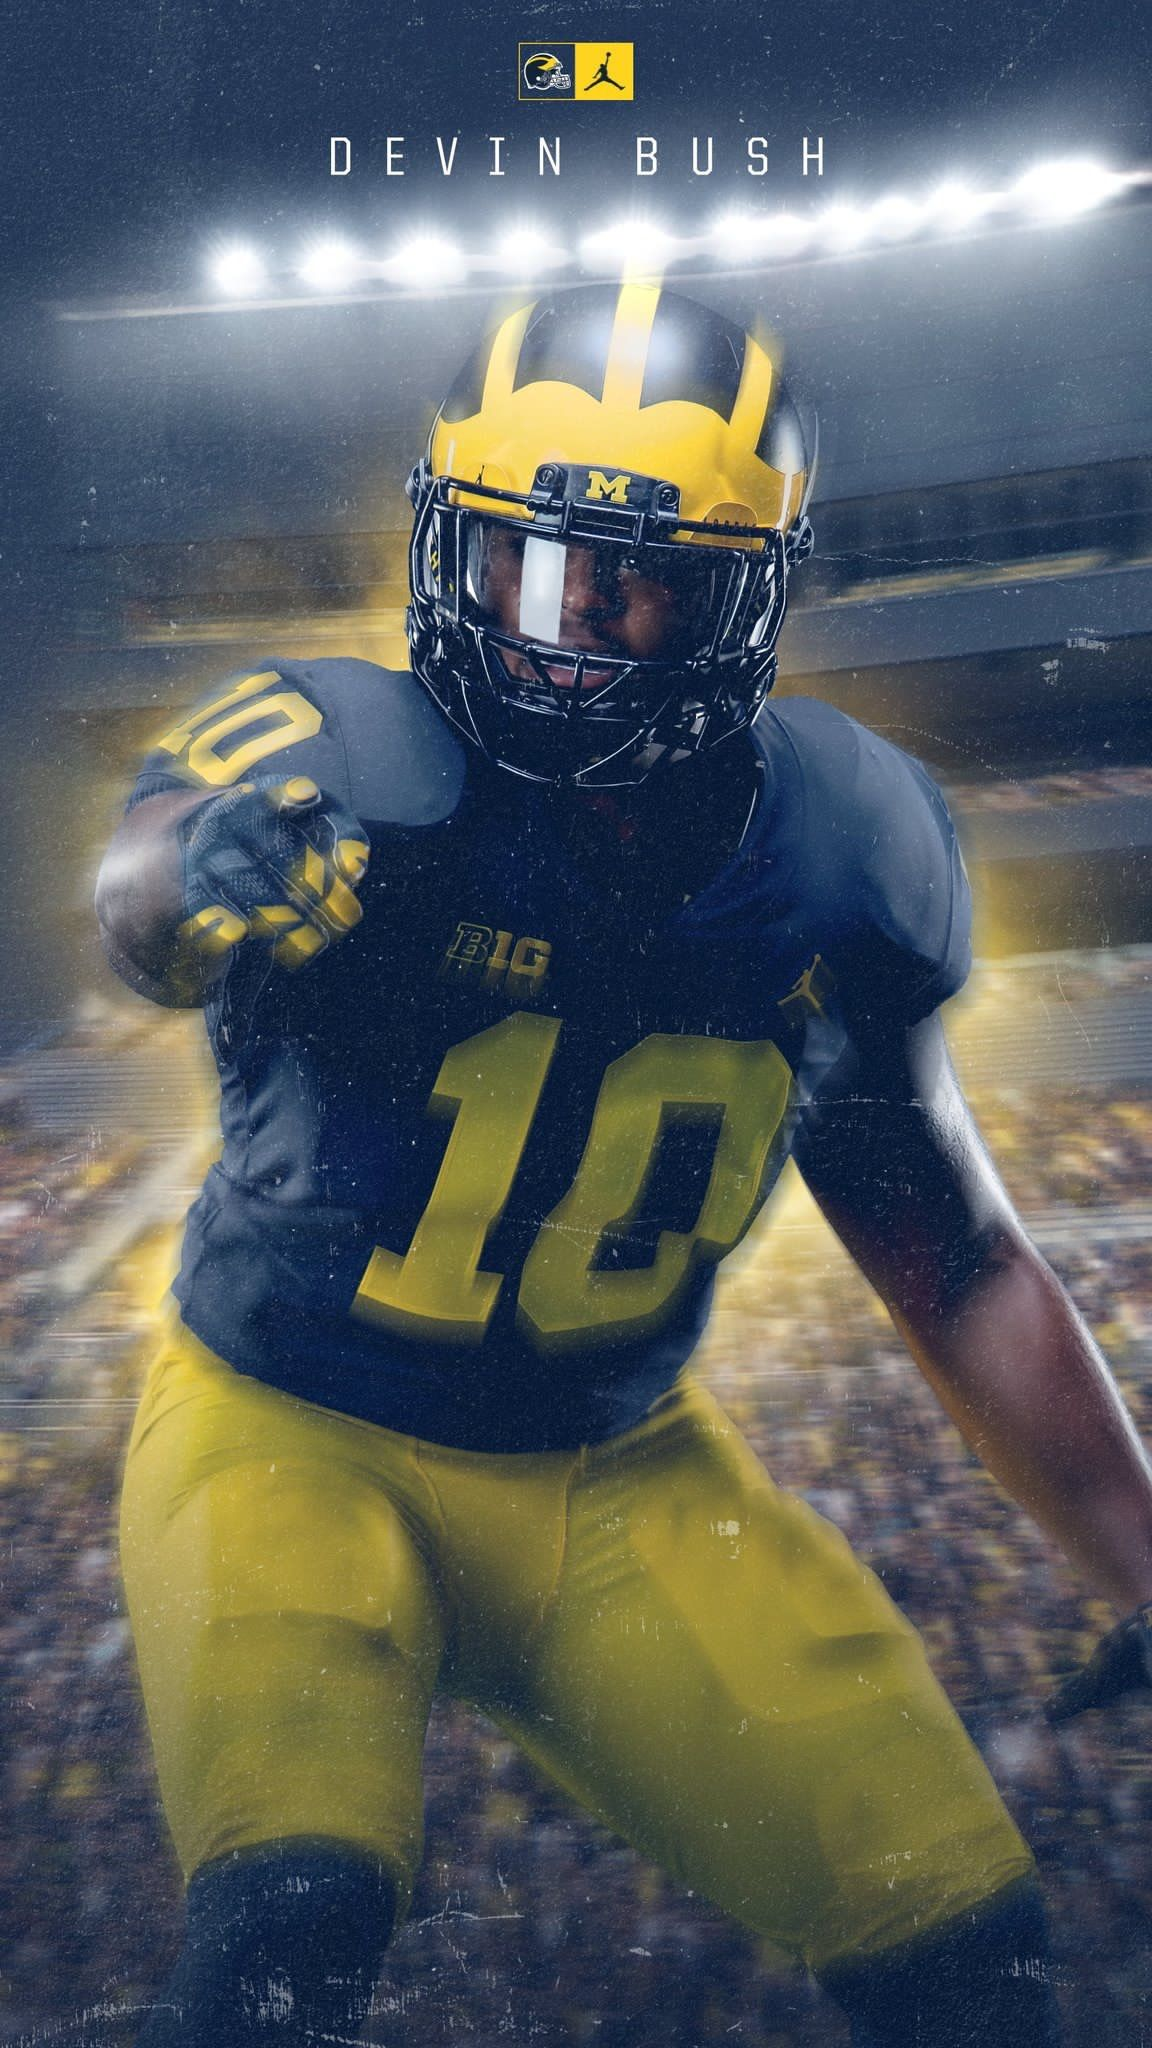 MM DEVIN BUSH MICHIGAN WOLVERINES FOOTBALL 8X10 SPORTS PHOTO